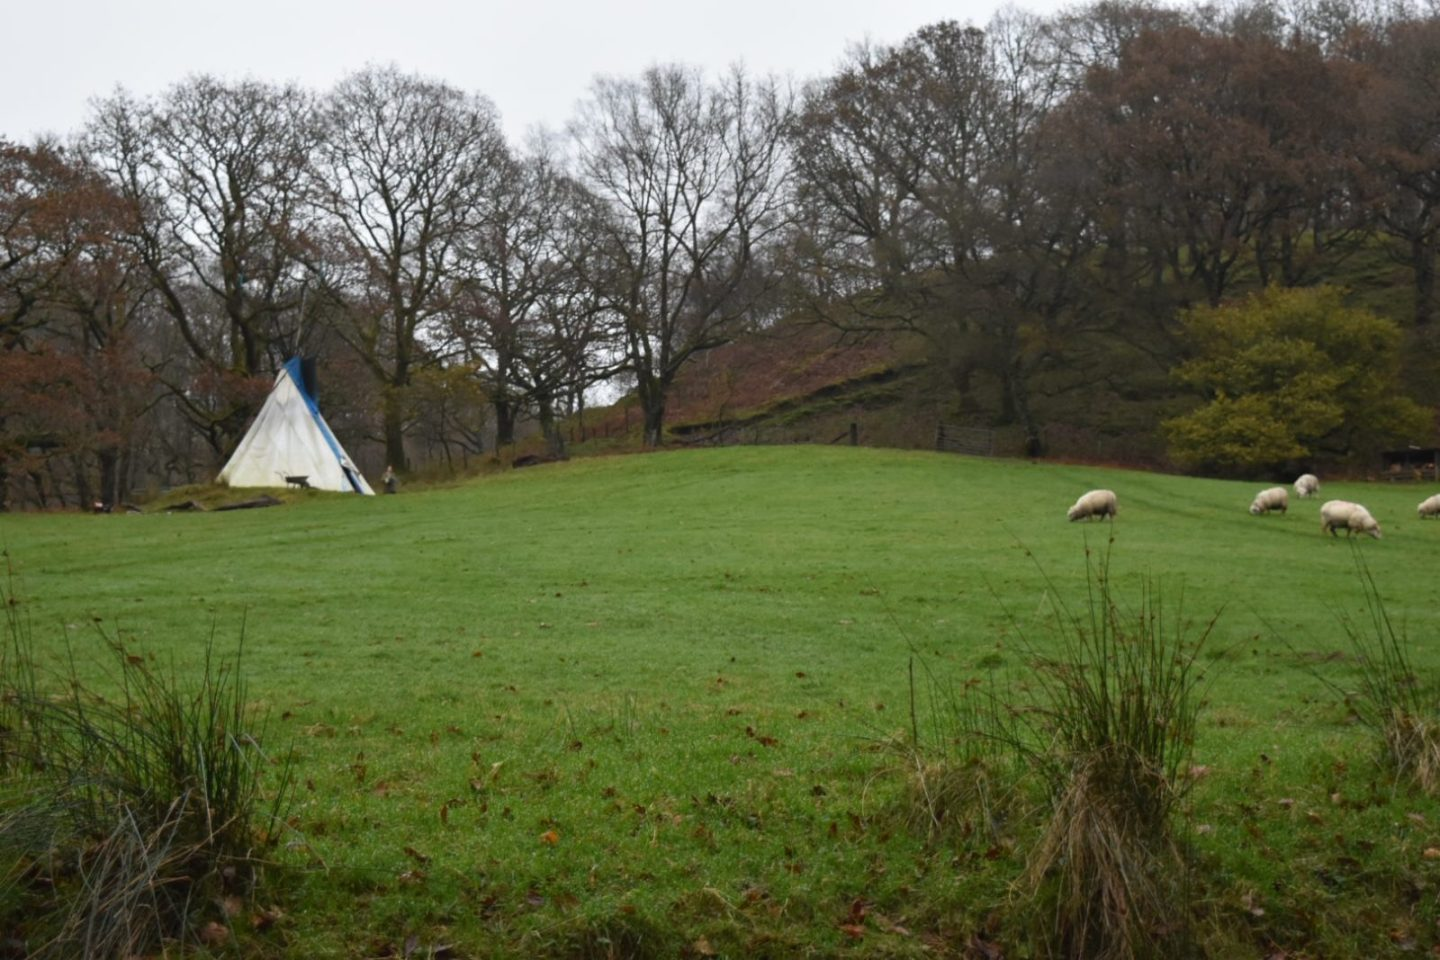 Glamping in Wales – A family glamping break at Eco Retreats